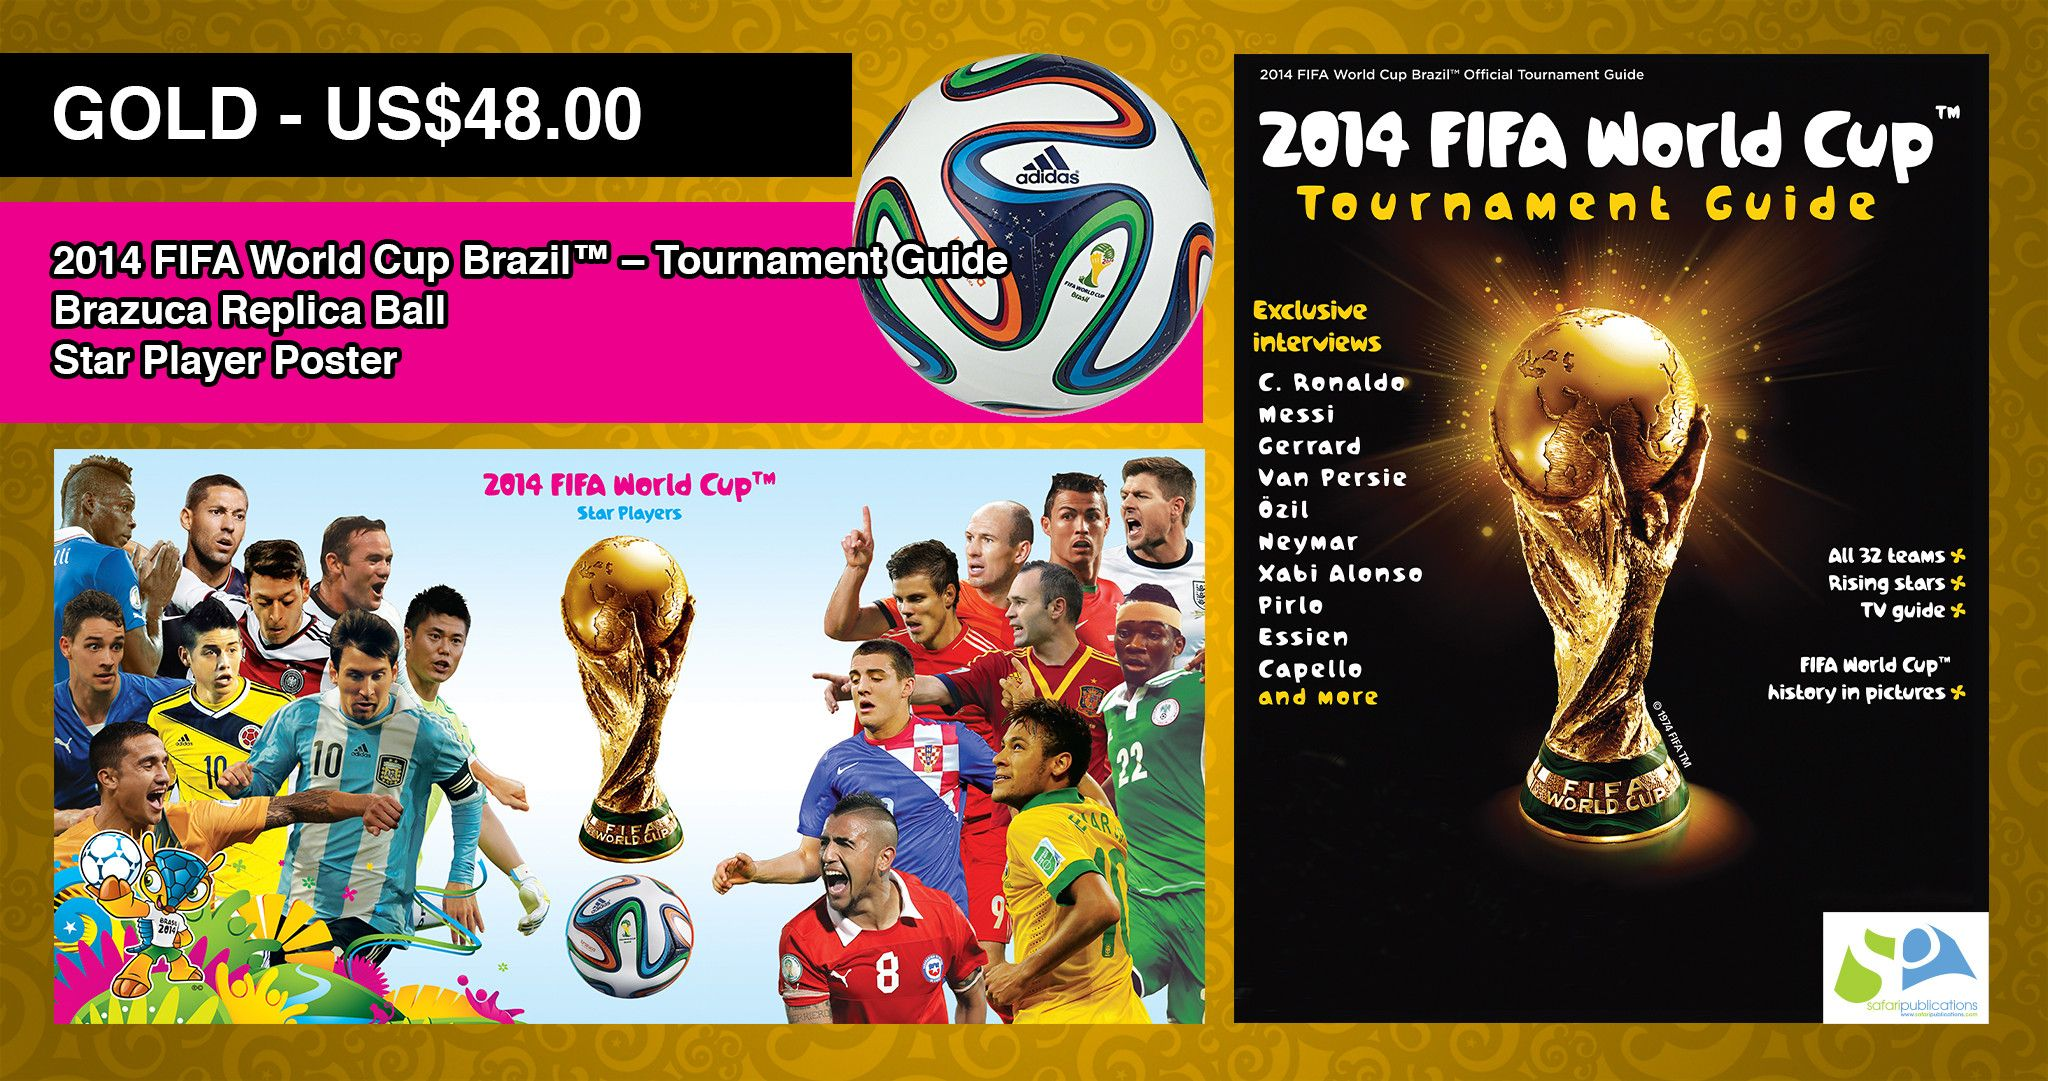 Fifa World Cup 2014 Packages - http://wallpaperzoo.com/fifa-world-cup-2014-packages-45121.html  #FifaWorldCup2014Packages